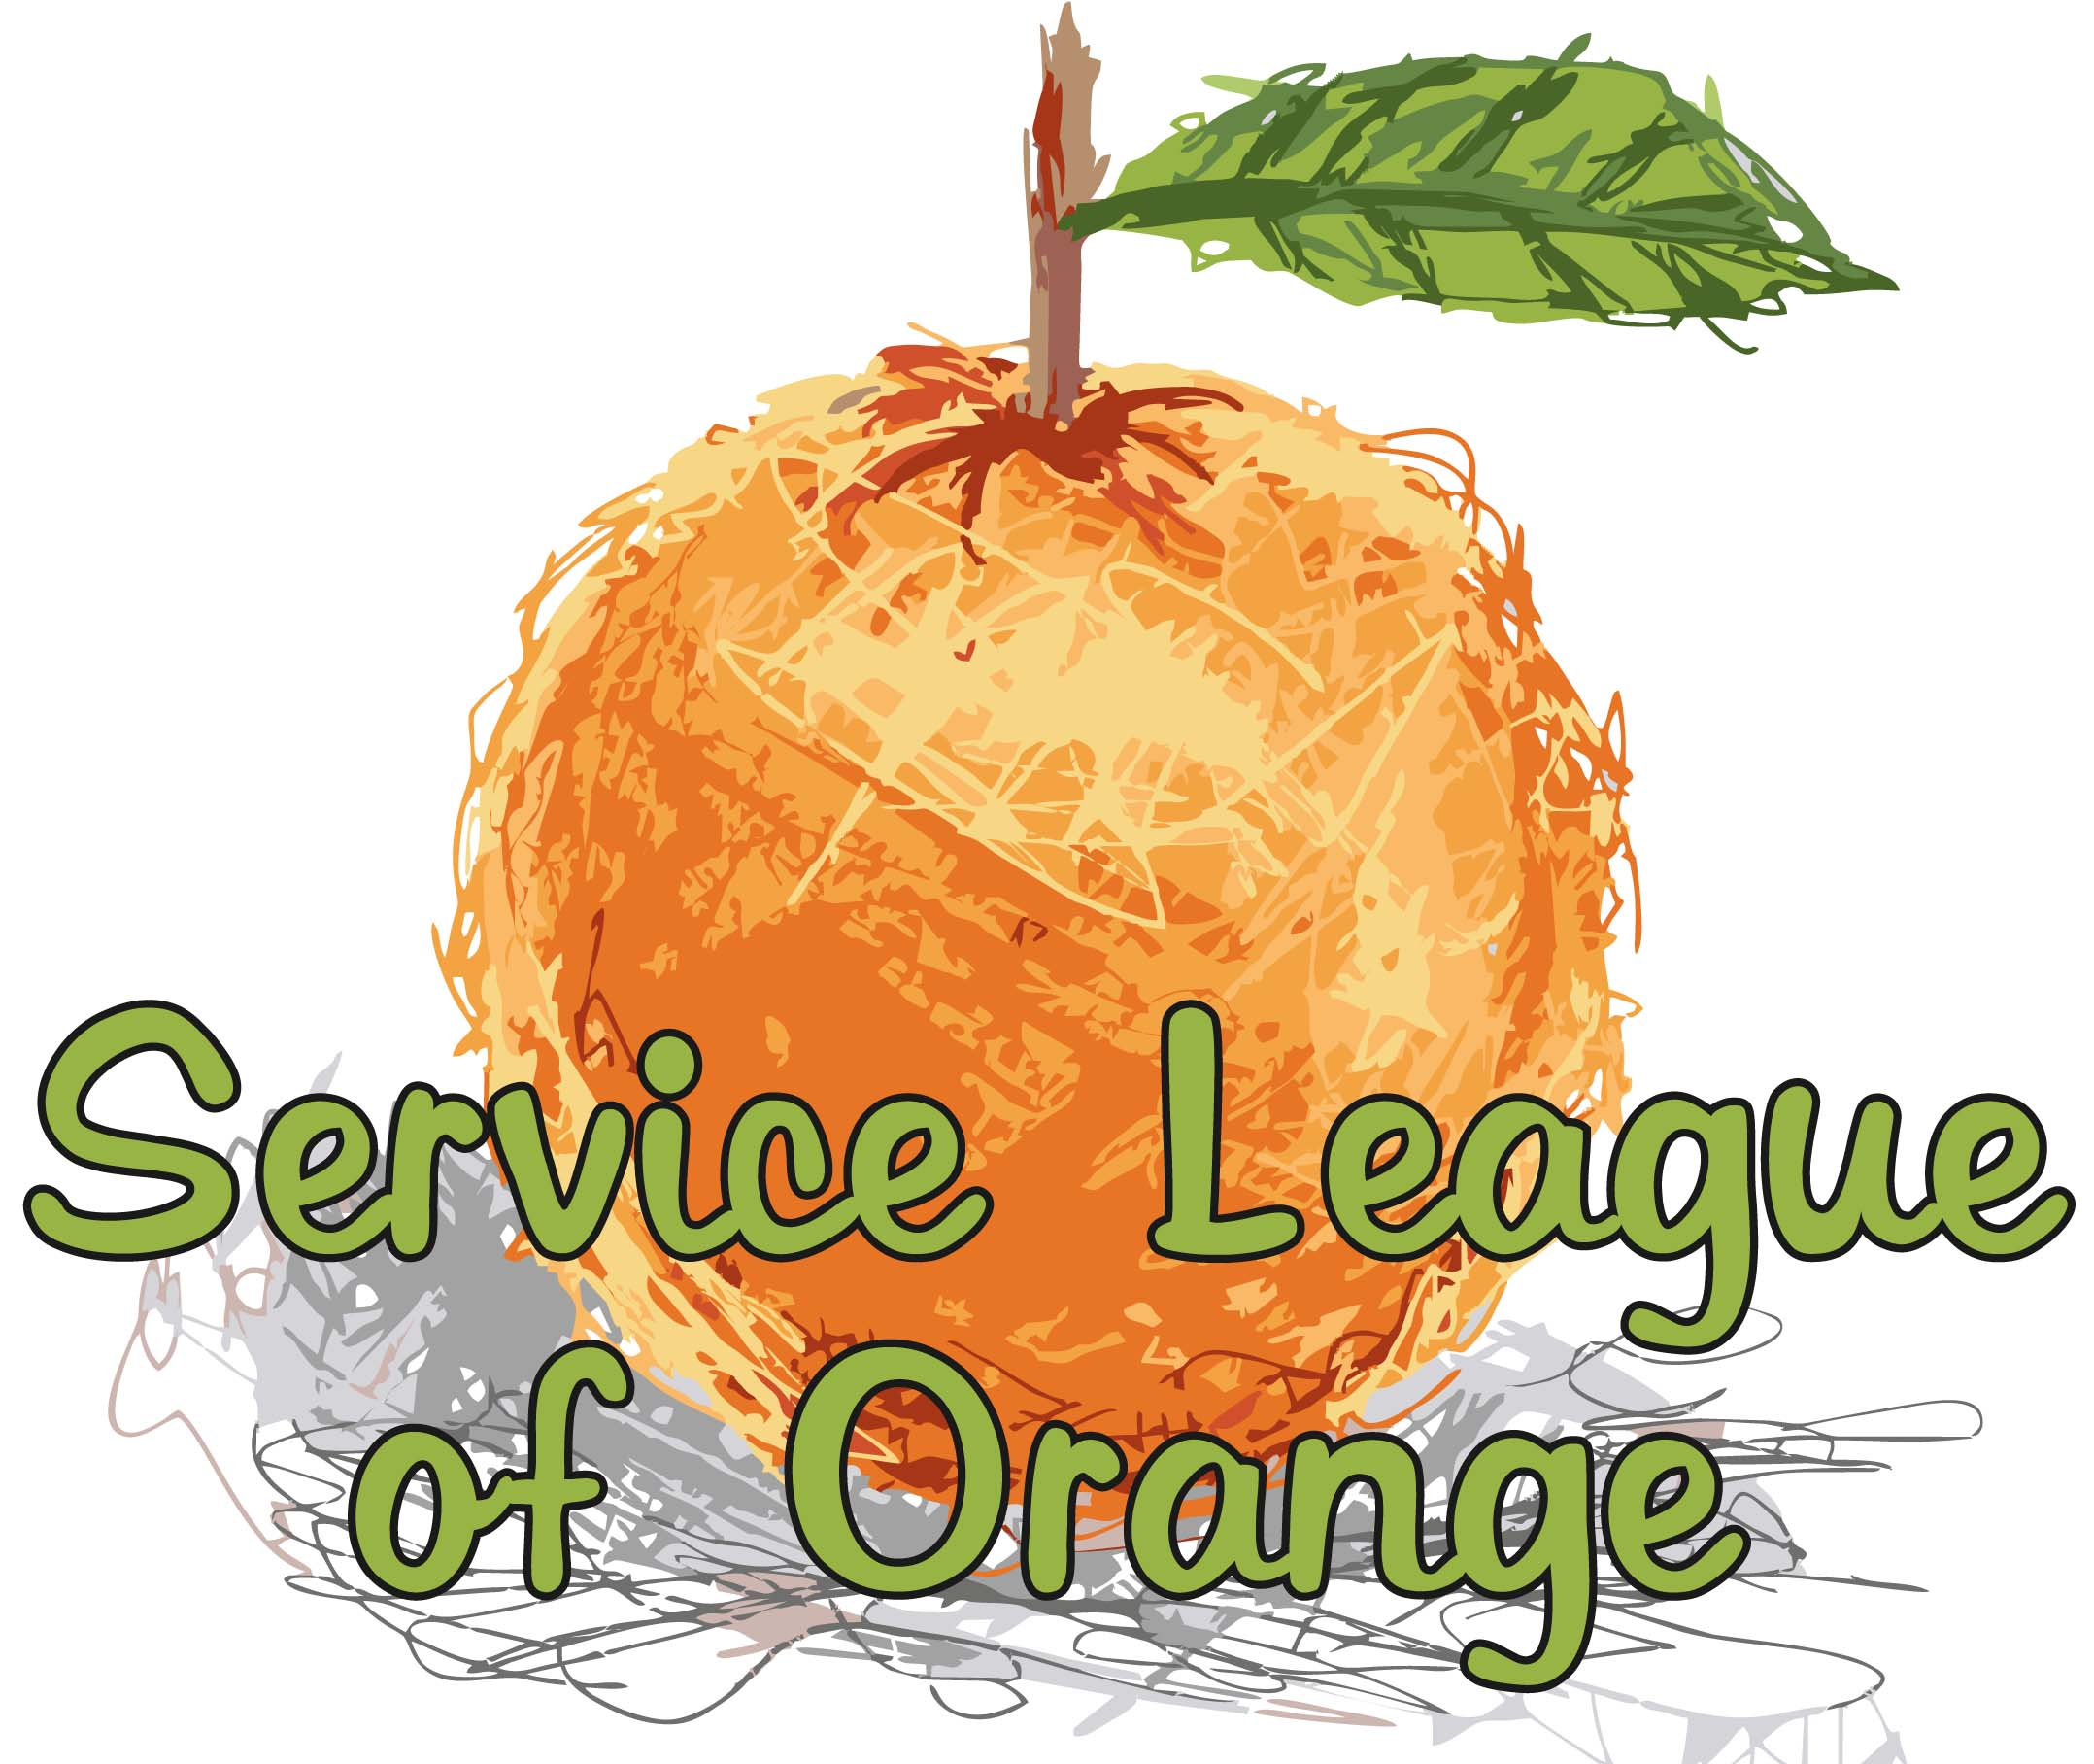 8Service League of Orange